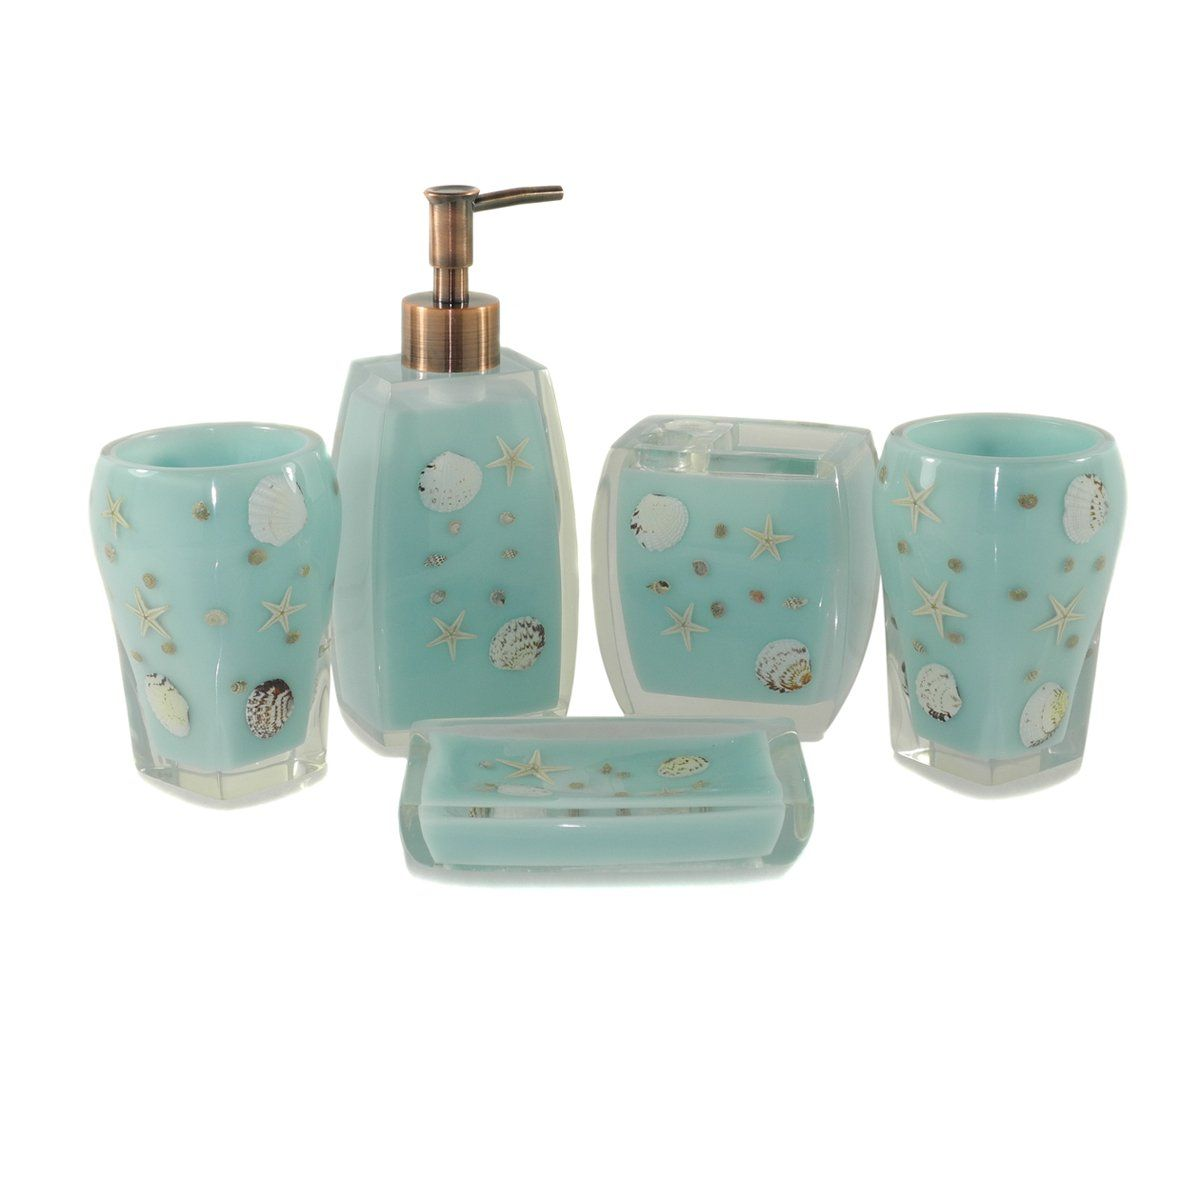 Dream bath blue starfish bath ensemble 5 for Bathroom soap dispensers bath accessories